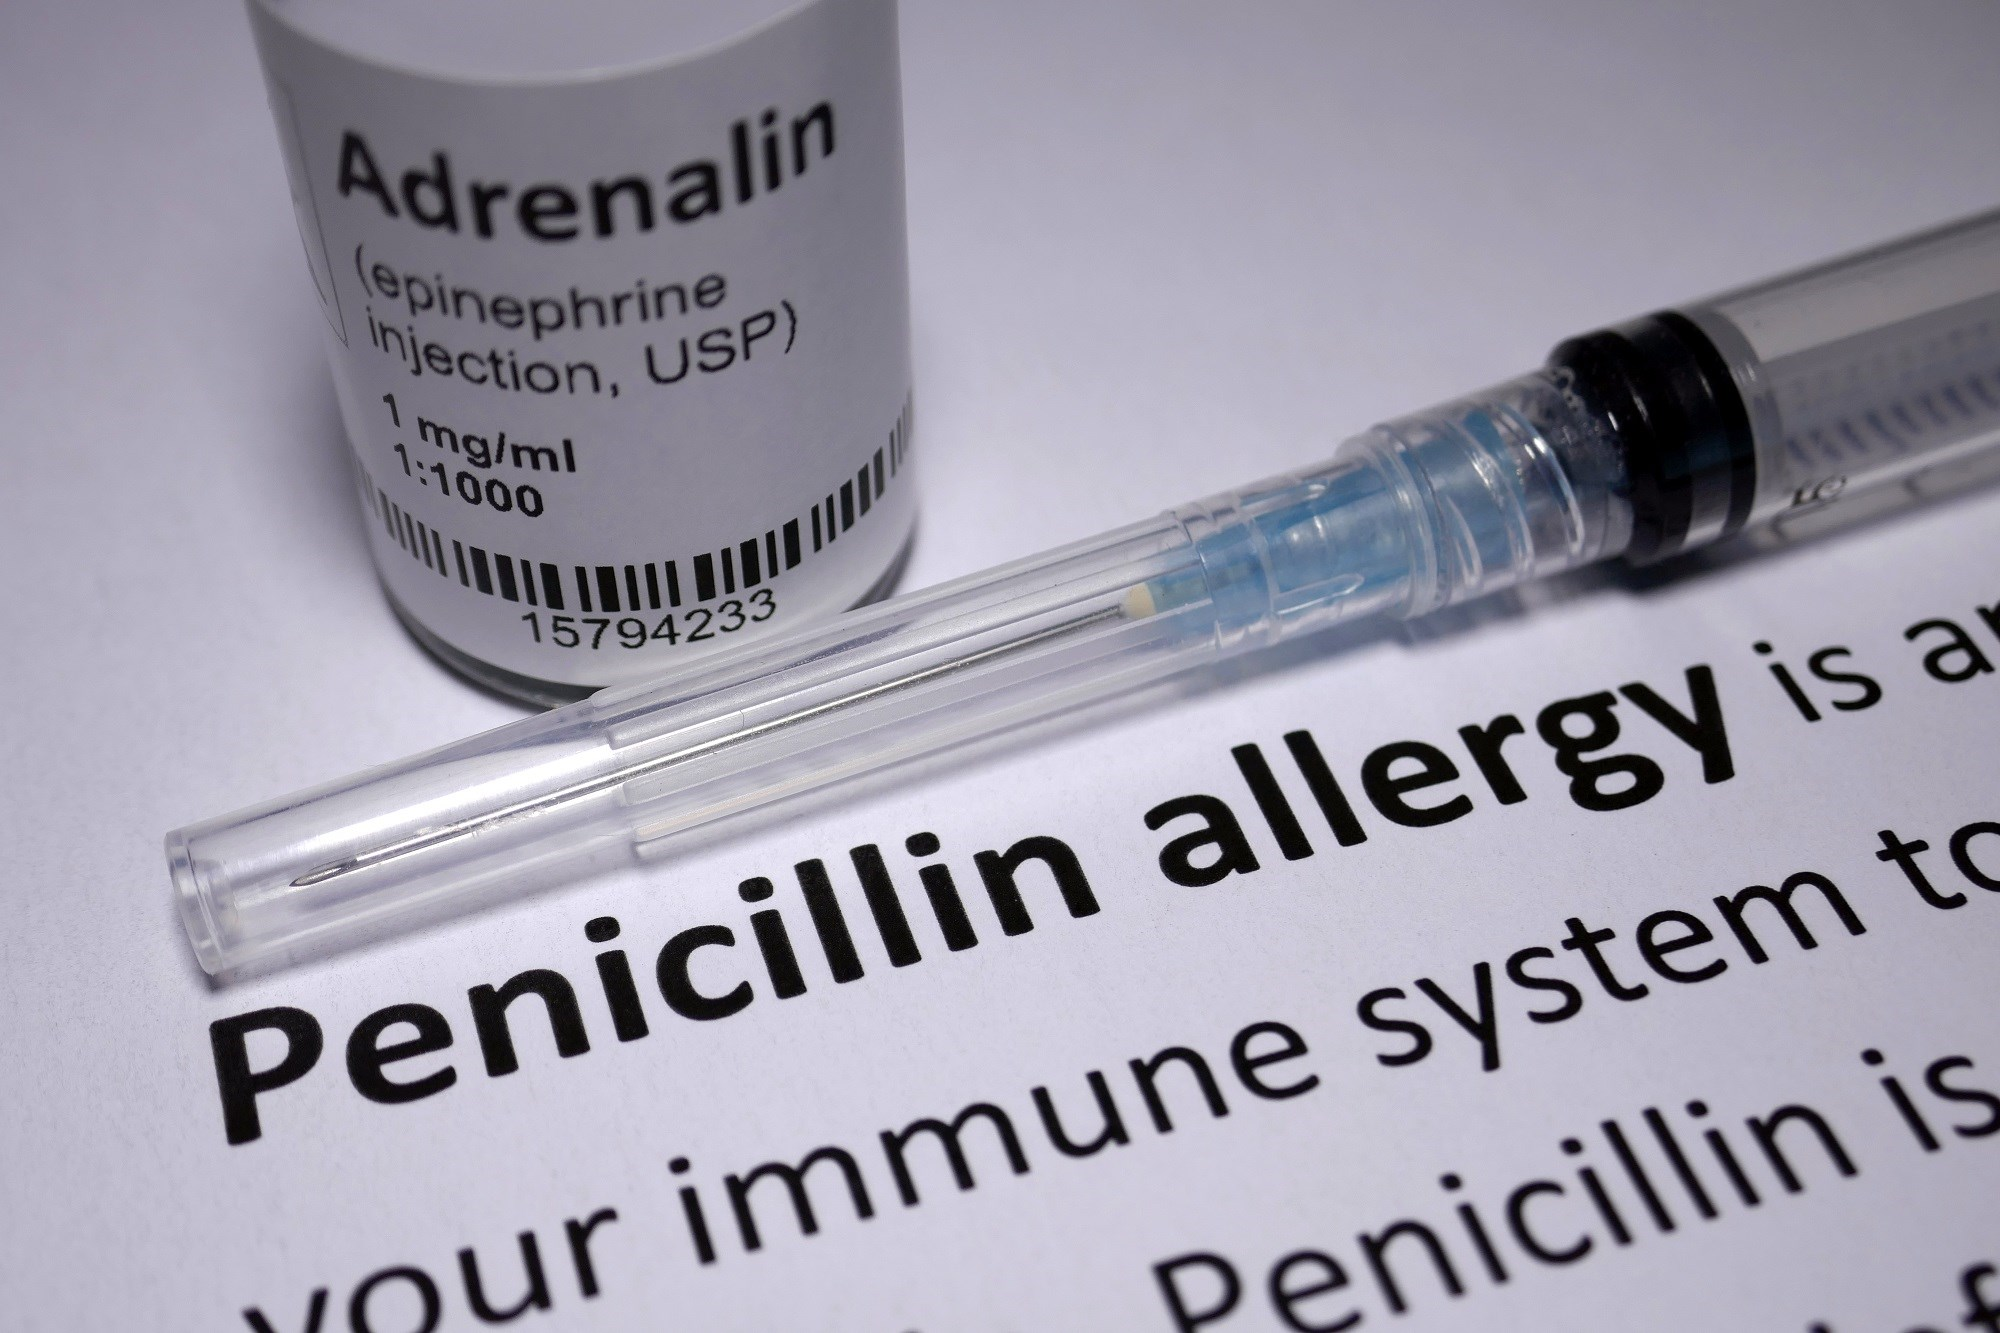 A new penicillin allergy review recommends that clinicians perform a comprehensive allergy history to assess risk level.